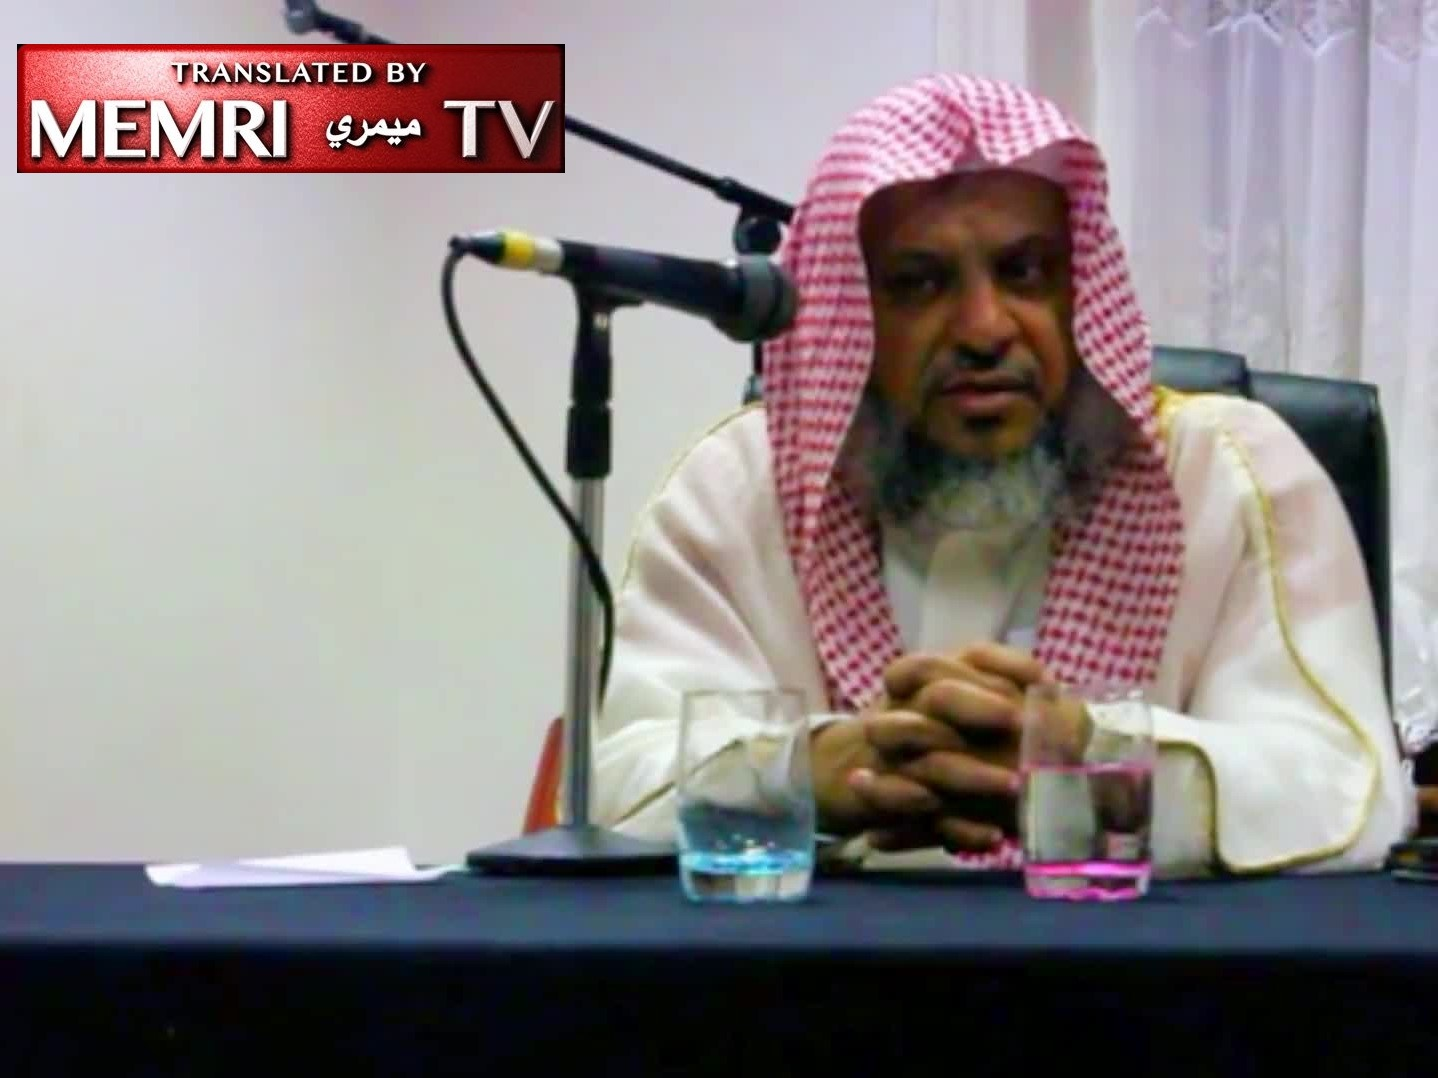 London Lecture by Saudi Cleric Muhammad Al-Malki: Polygamy Is the Remedy for AIDS [Archival]